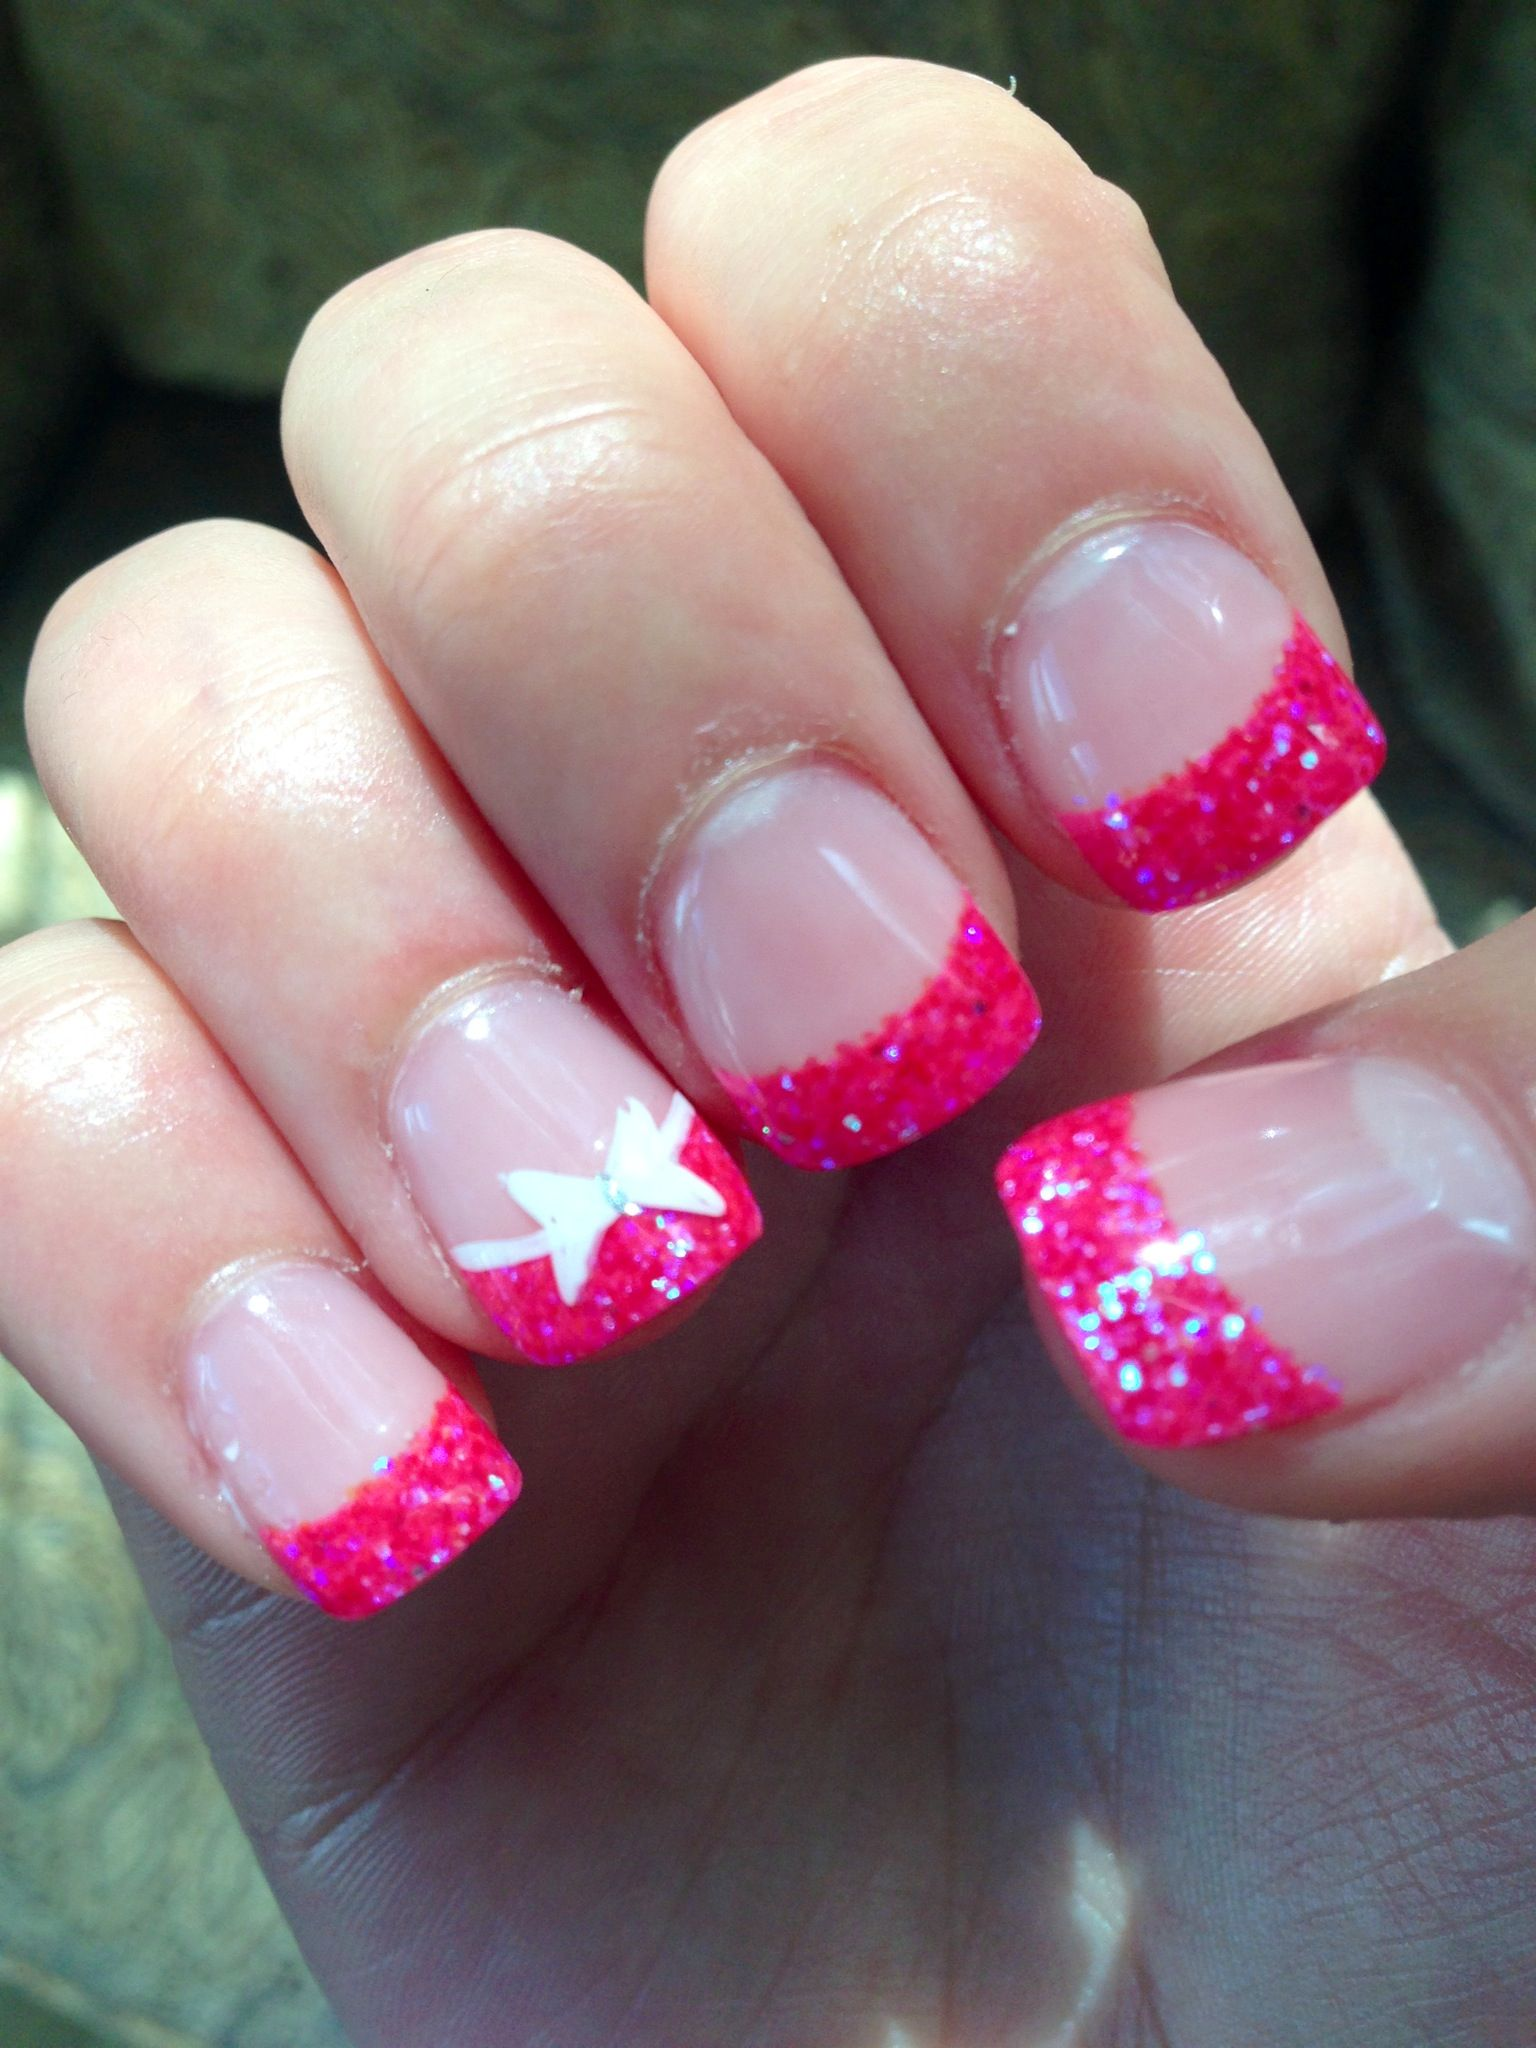 Pink glitter gel nails with white bows. | Nail Ideas | Pinterest ...